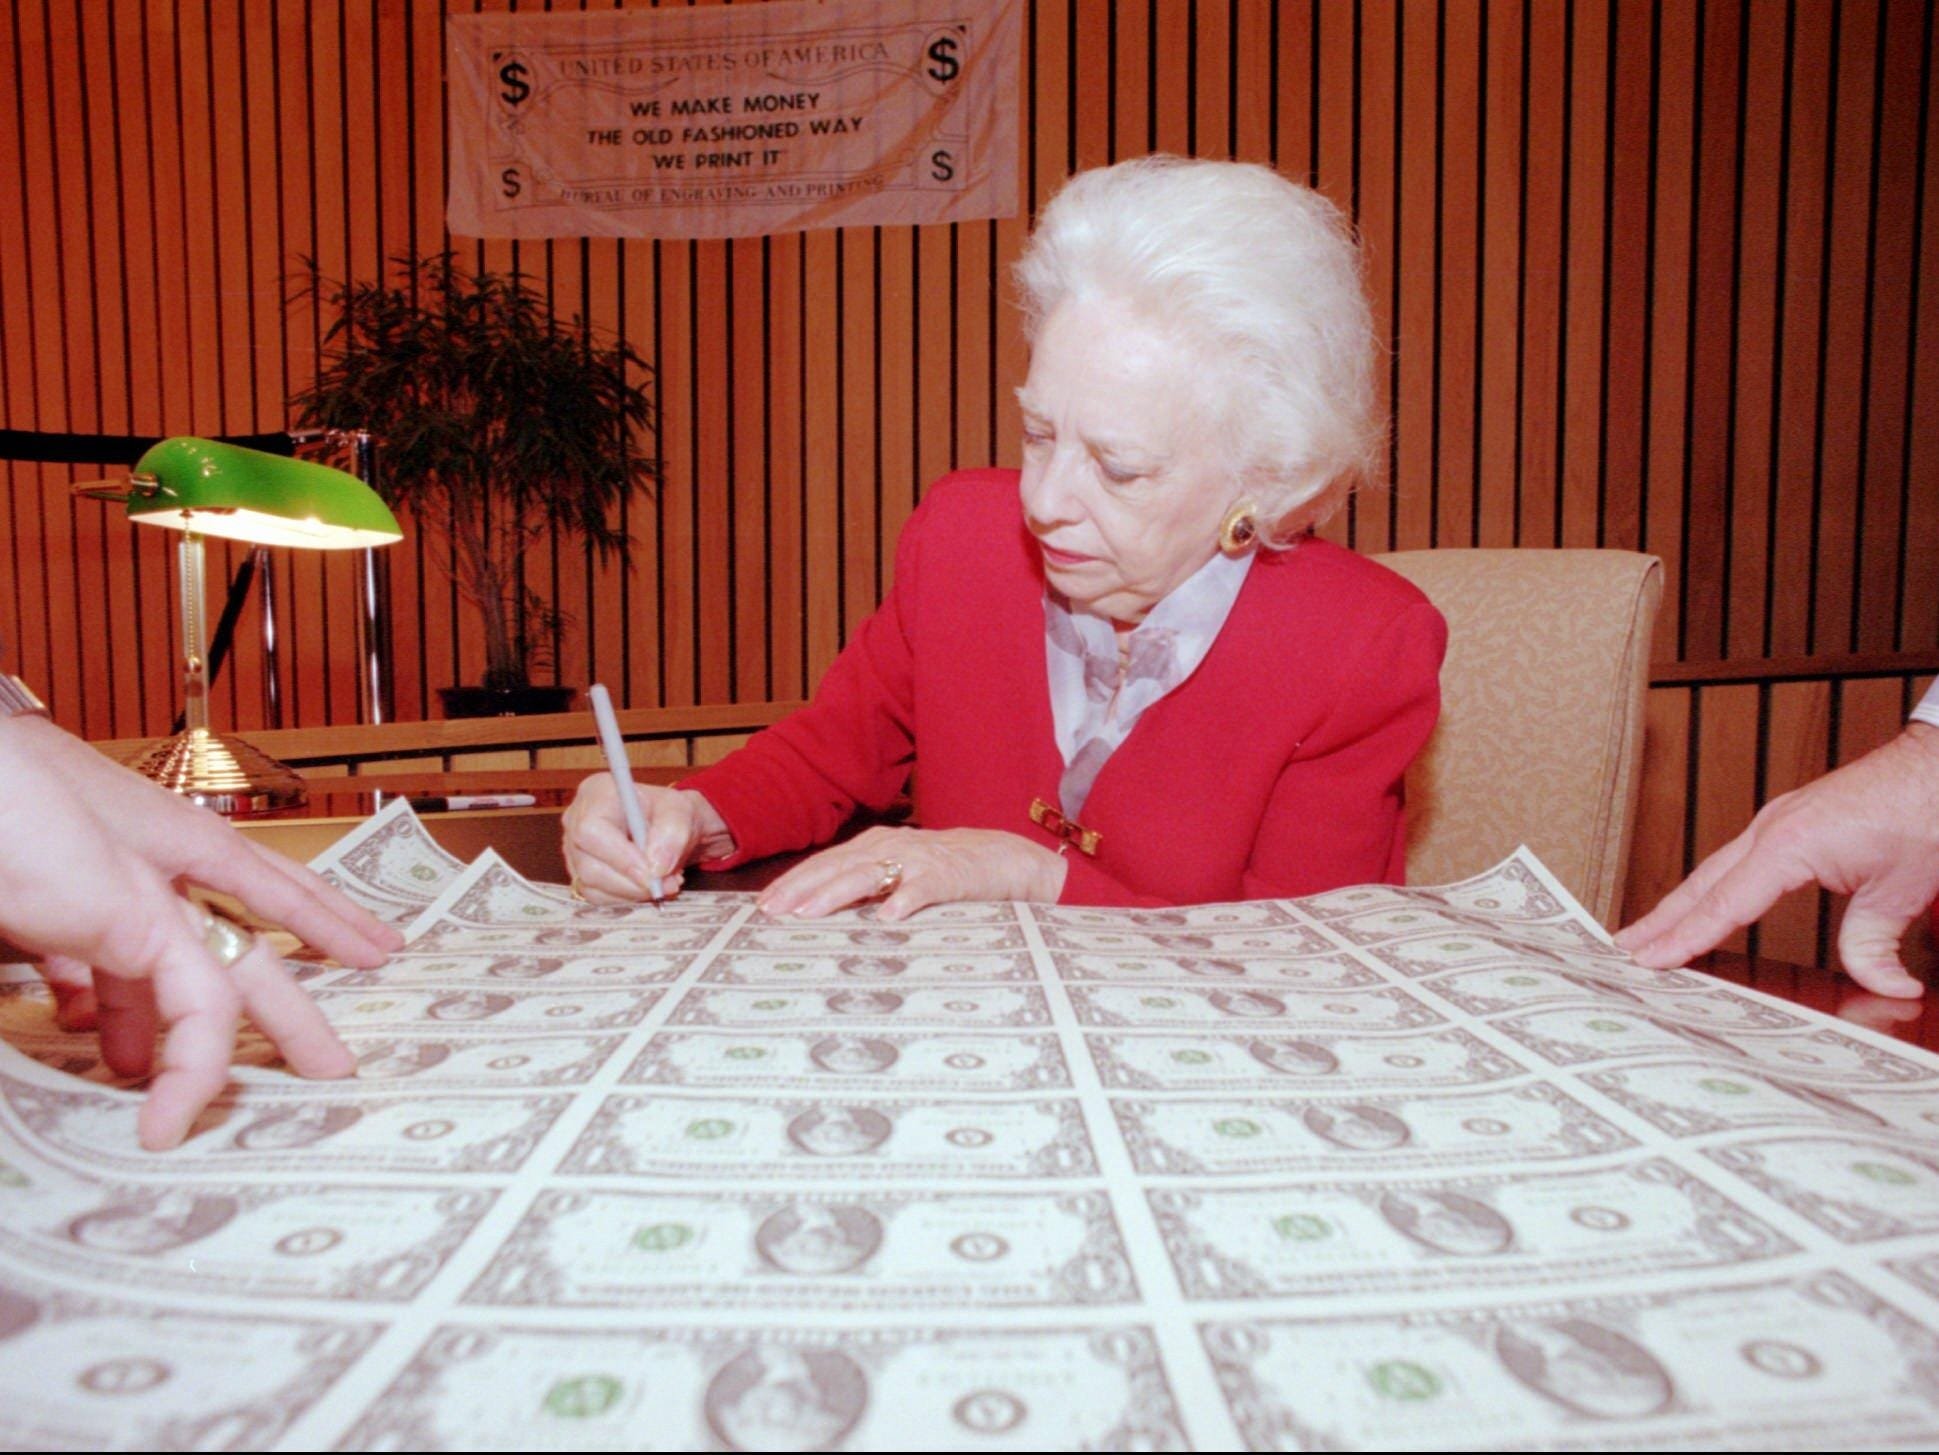 Mary Ellen Withrow, Treasurer of the United States, signs a sheet of uncut one dollar bills during her visit to the Federal Reserve Bank in Boston Thursday, Nov. 20, 1997. Withrow was at the Federal Reserve Bank to promote sales of uncut currency that will be availiable to the public Friday as possible holiday gifts. (AP Photo/Gail Oskin)